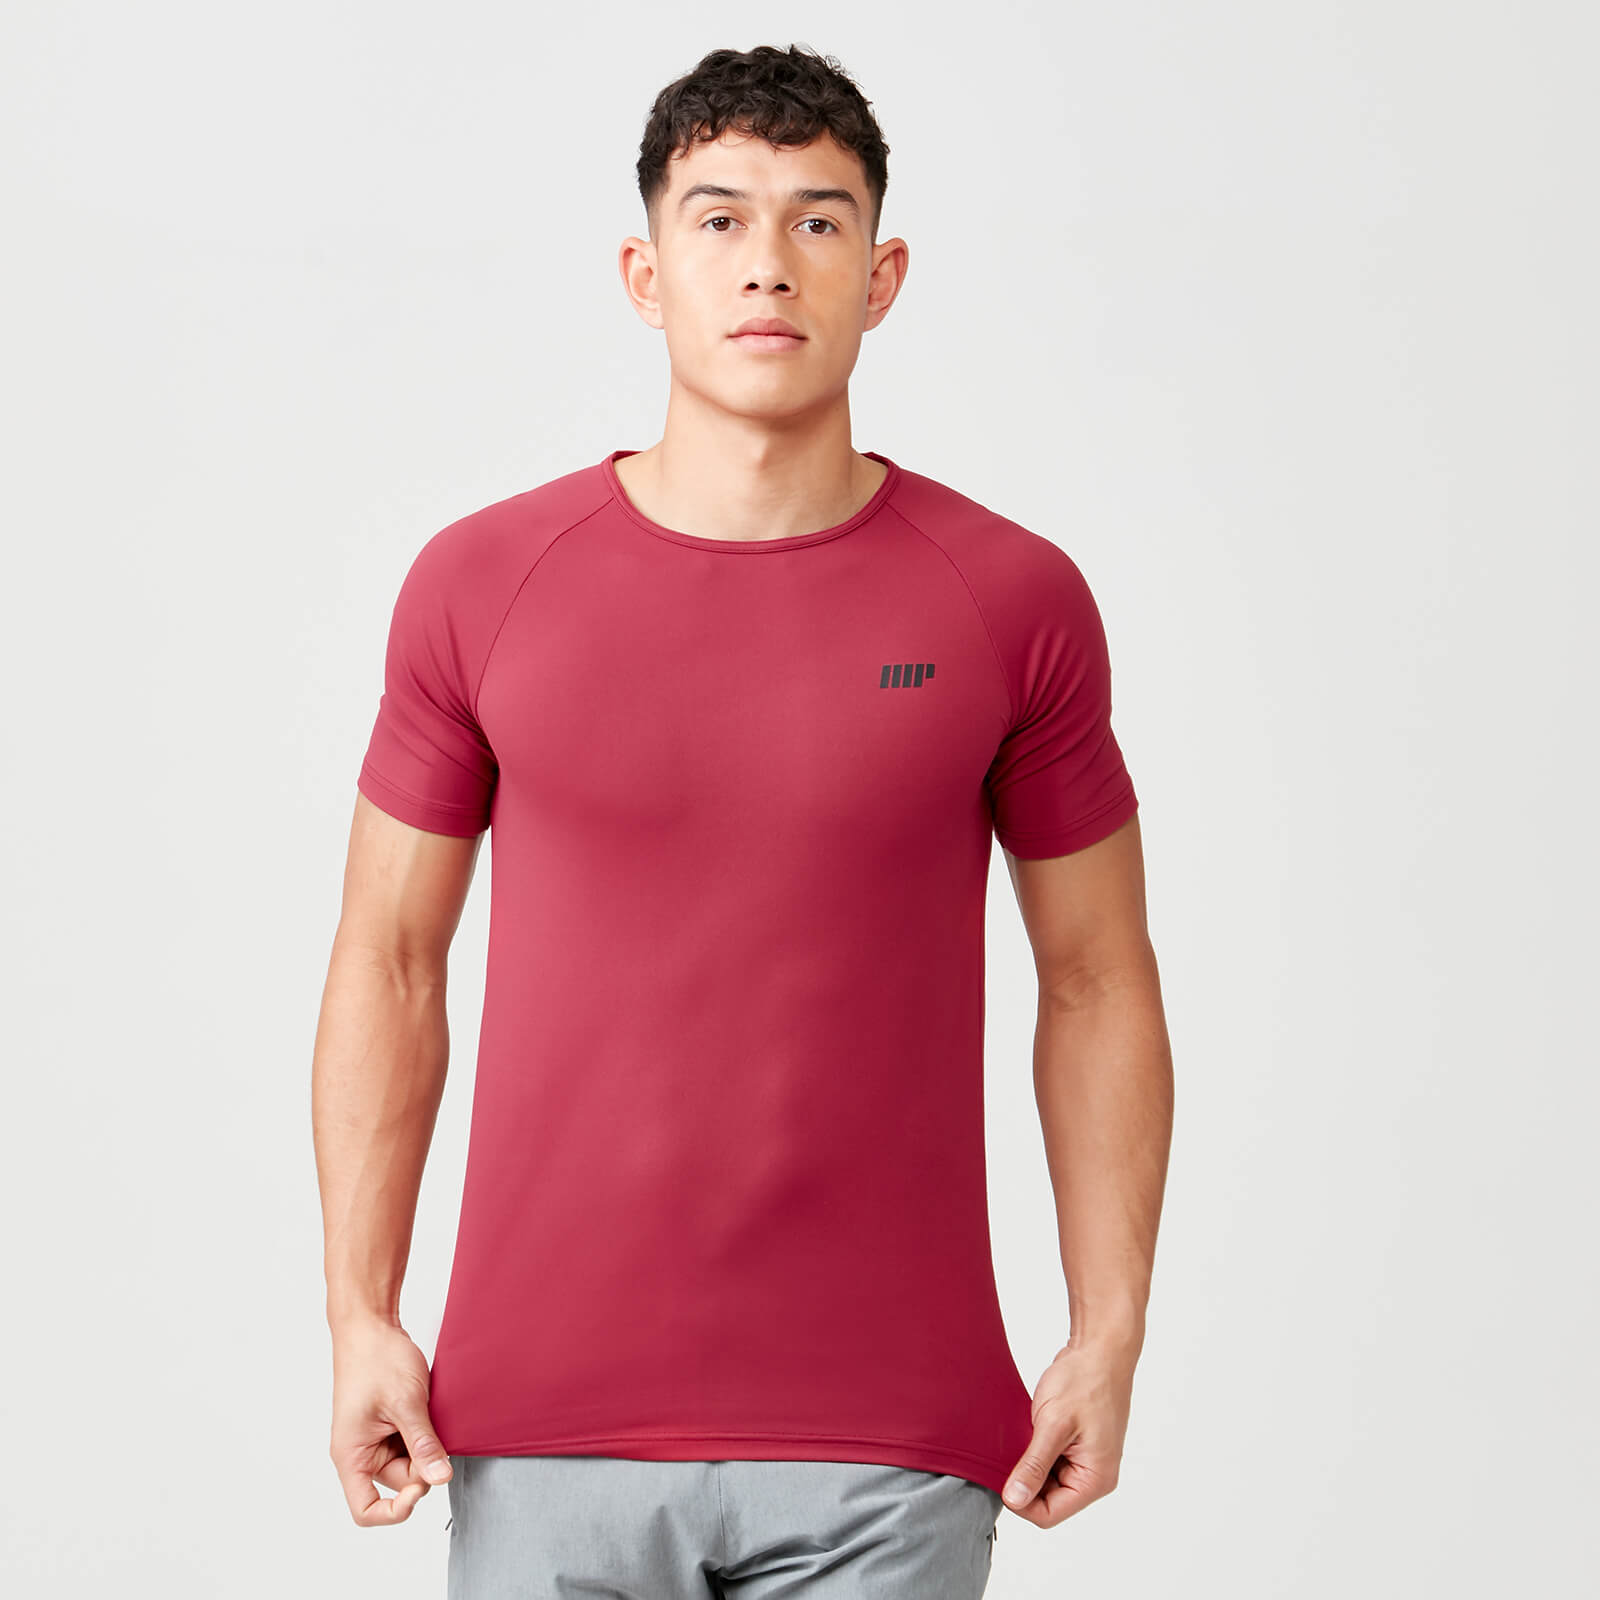 Myprotein Dry Tech T-Shirt - Red - XS